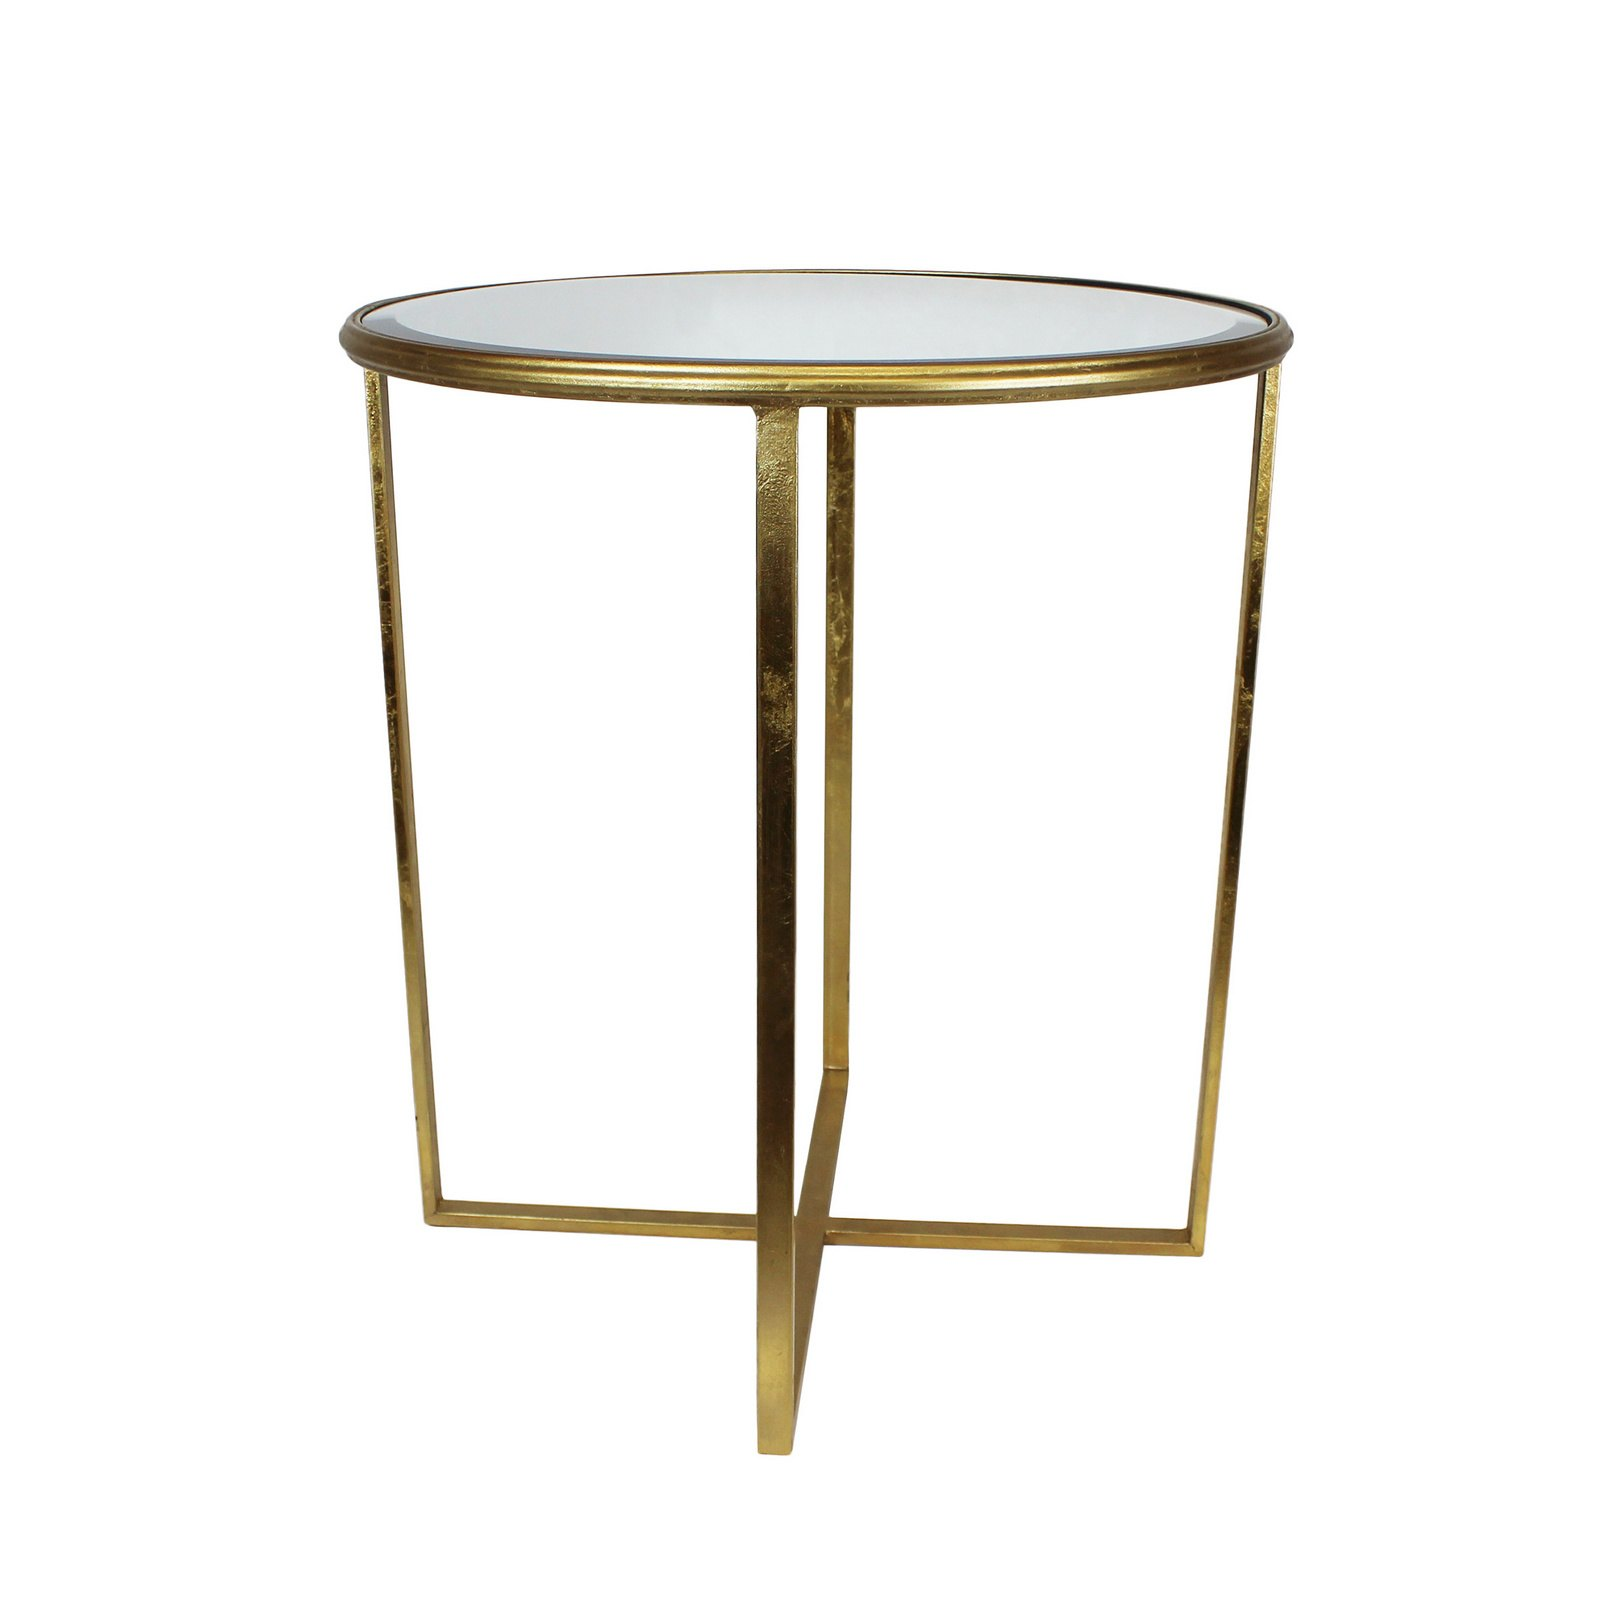 mom urban designs round gold mirror accent table set nautical bathroom sconces black solid wood coffee plexiglass nesting tables narrow kitchen square glass metal drum lucite and